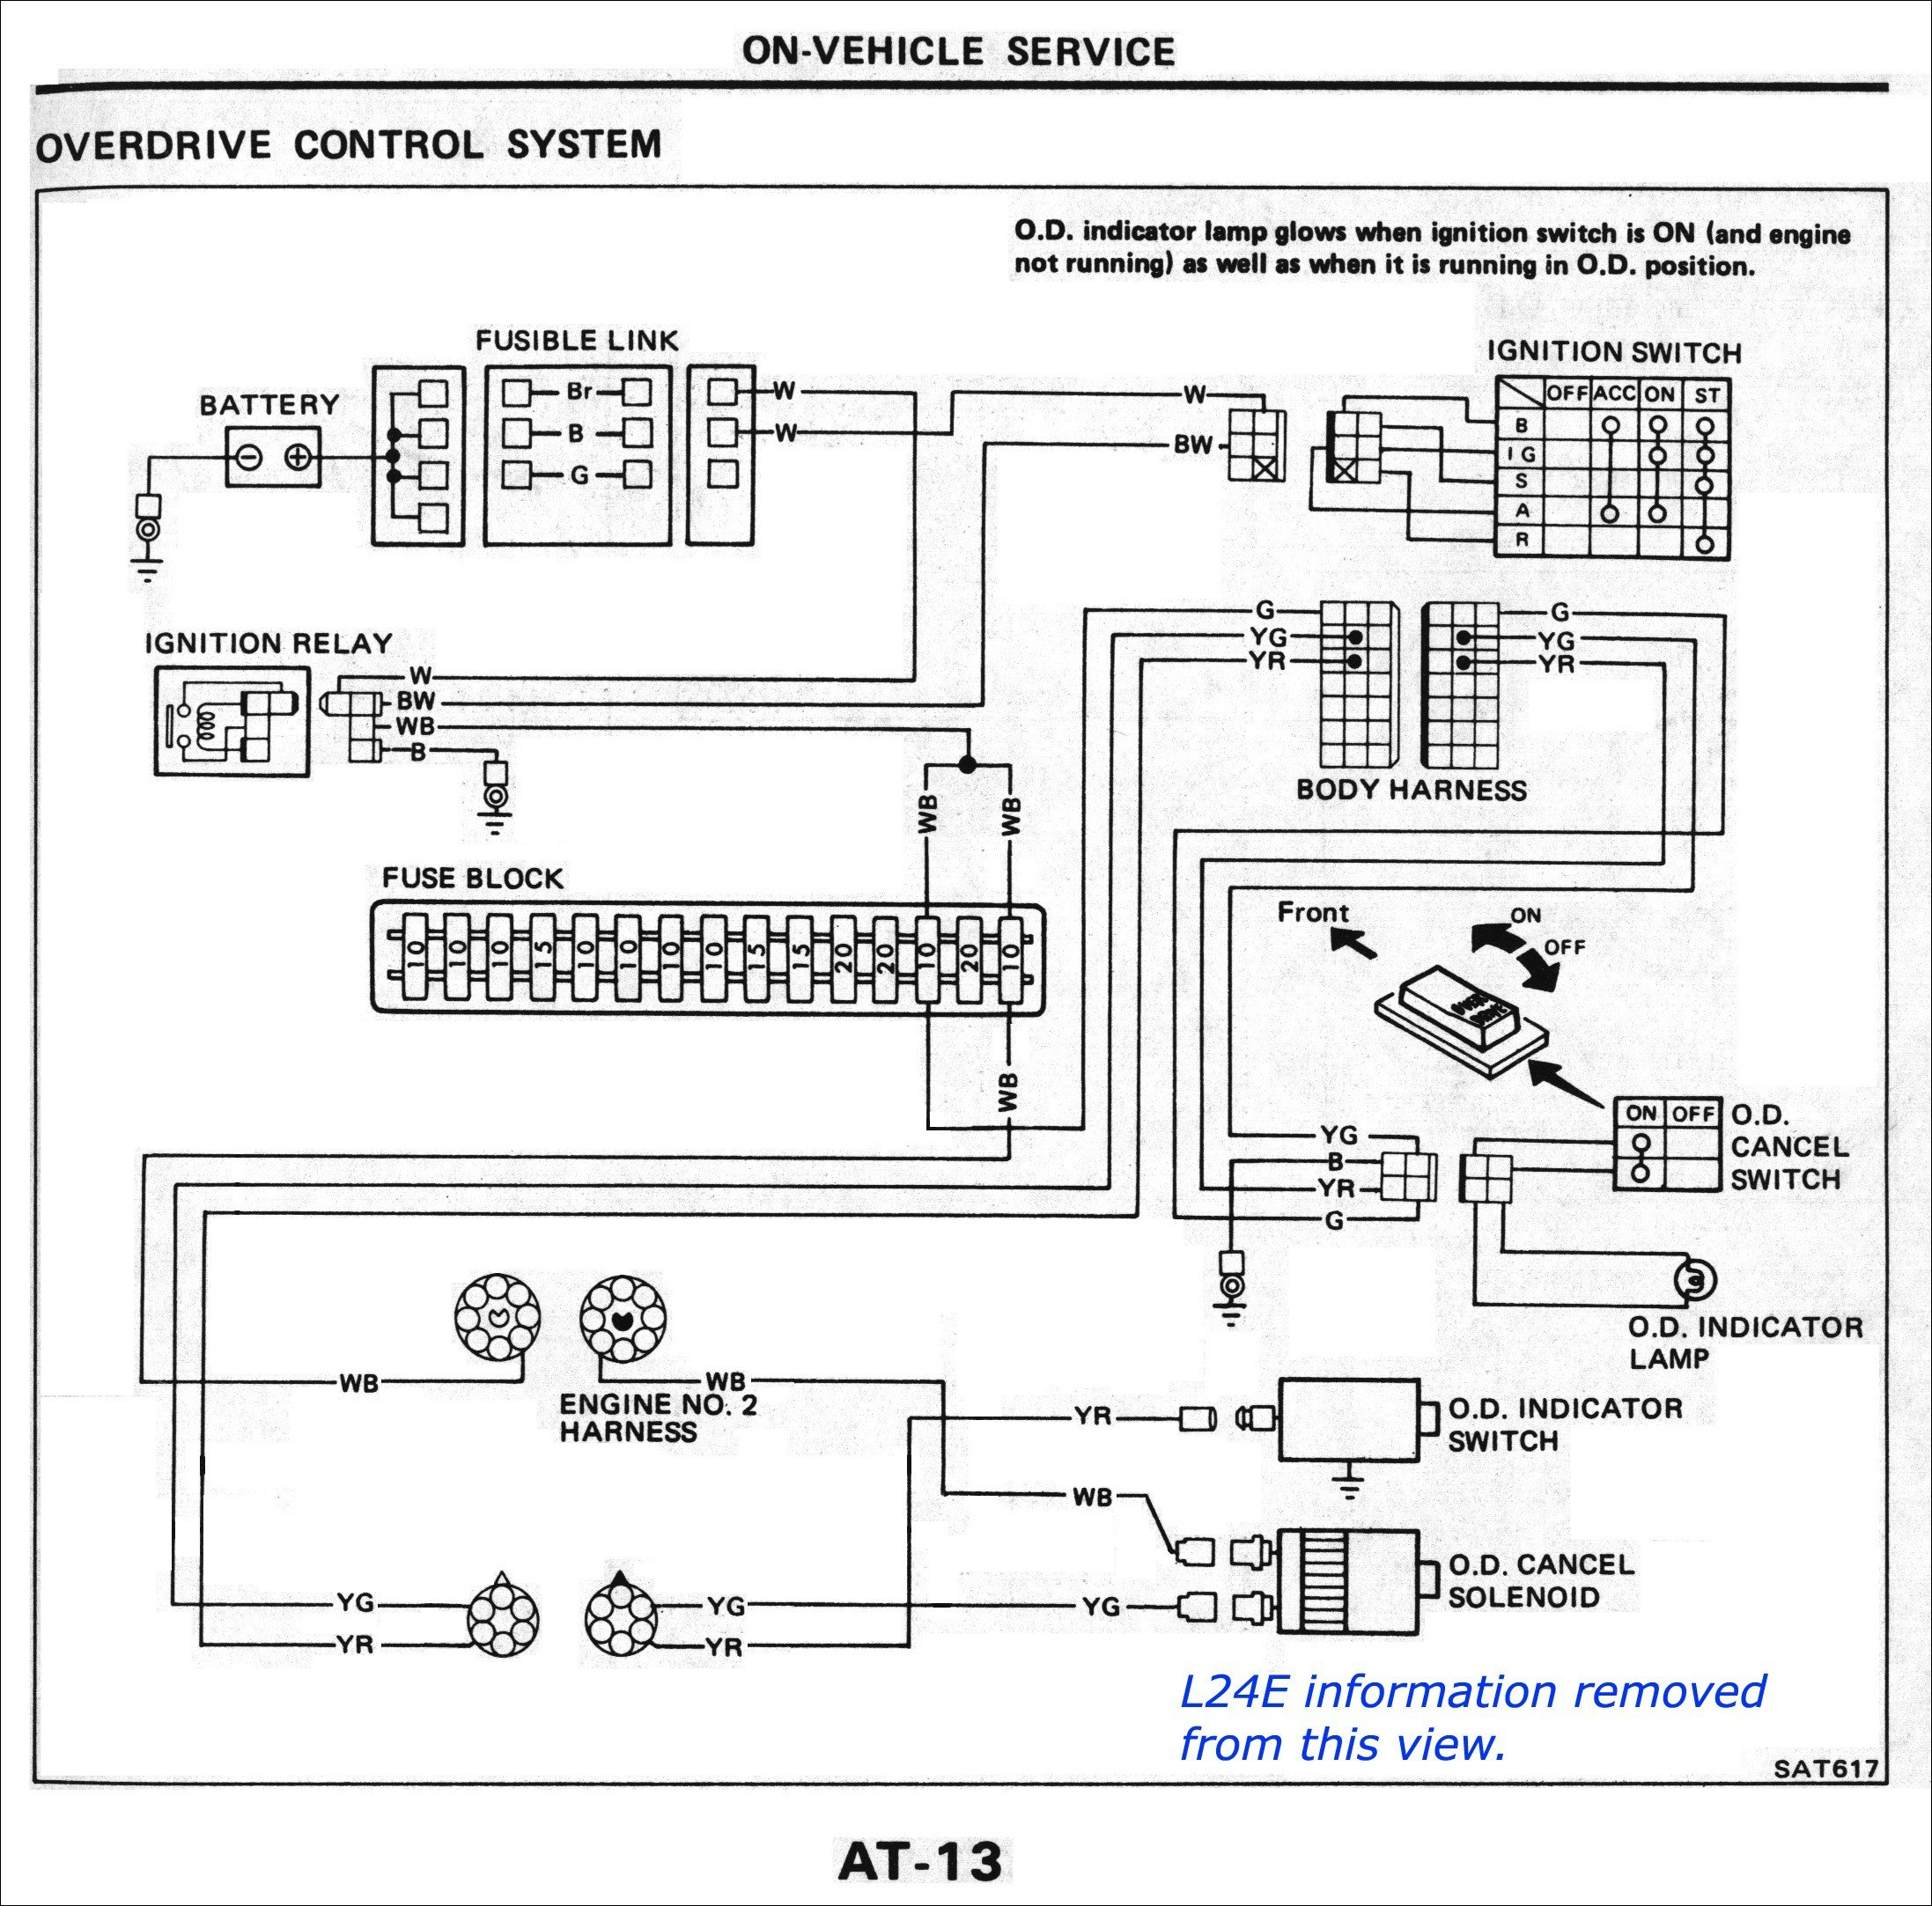 Nissan Altima Wiring Diagram Collection. Nissan Altima Wiring Diagram Collectionnissan Inspirational Maxxima Light Download. Wiring. 2008 Altima Wiring Harness Diagram At Scoala.co